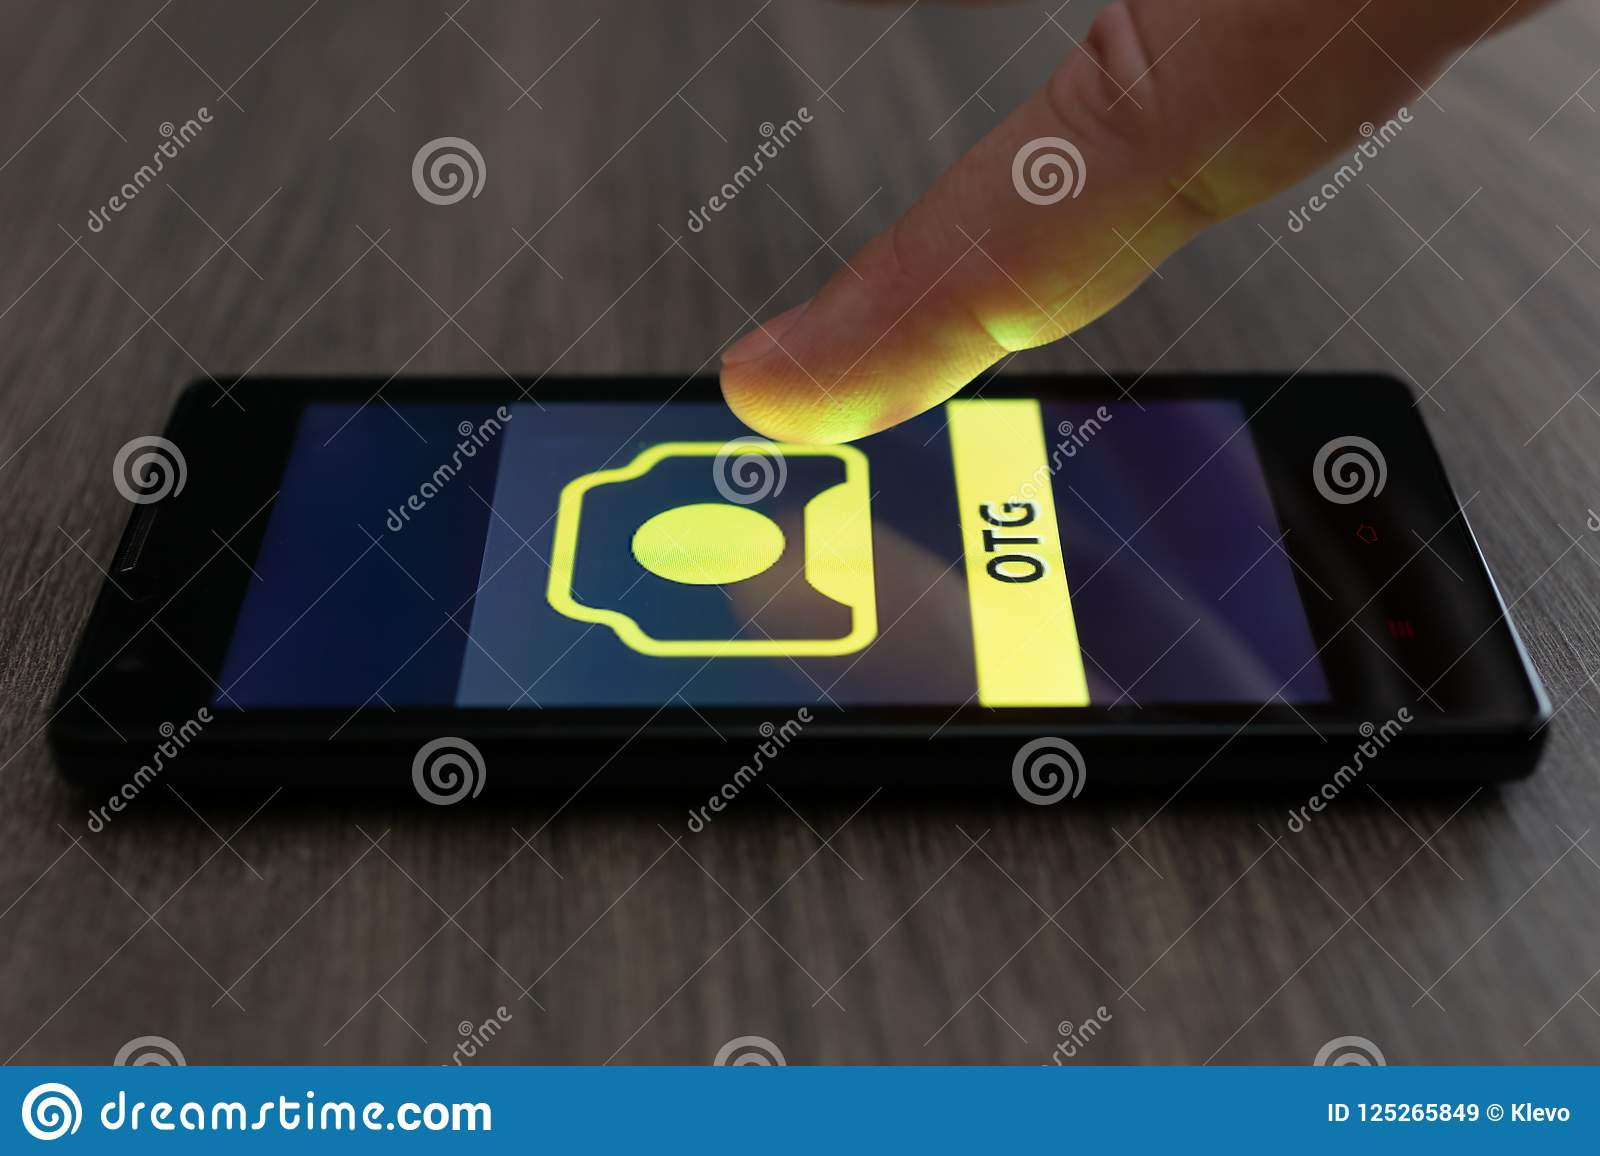 MOSCOW, RUSSIA - August 19, 2018: Smartphone on table displaying logo of 123RF app. Finger above touch screen. Microstock OTG